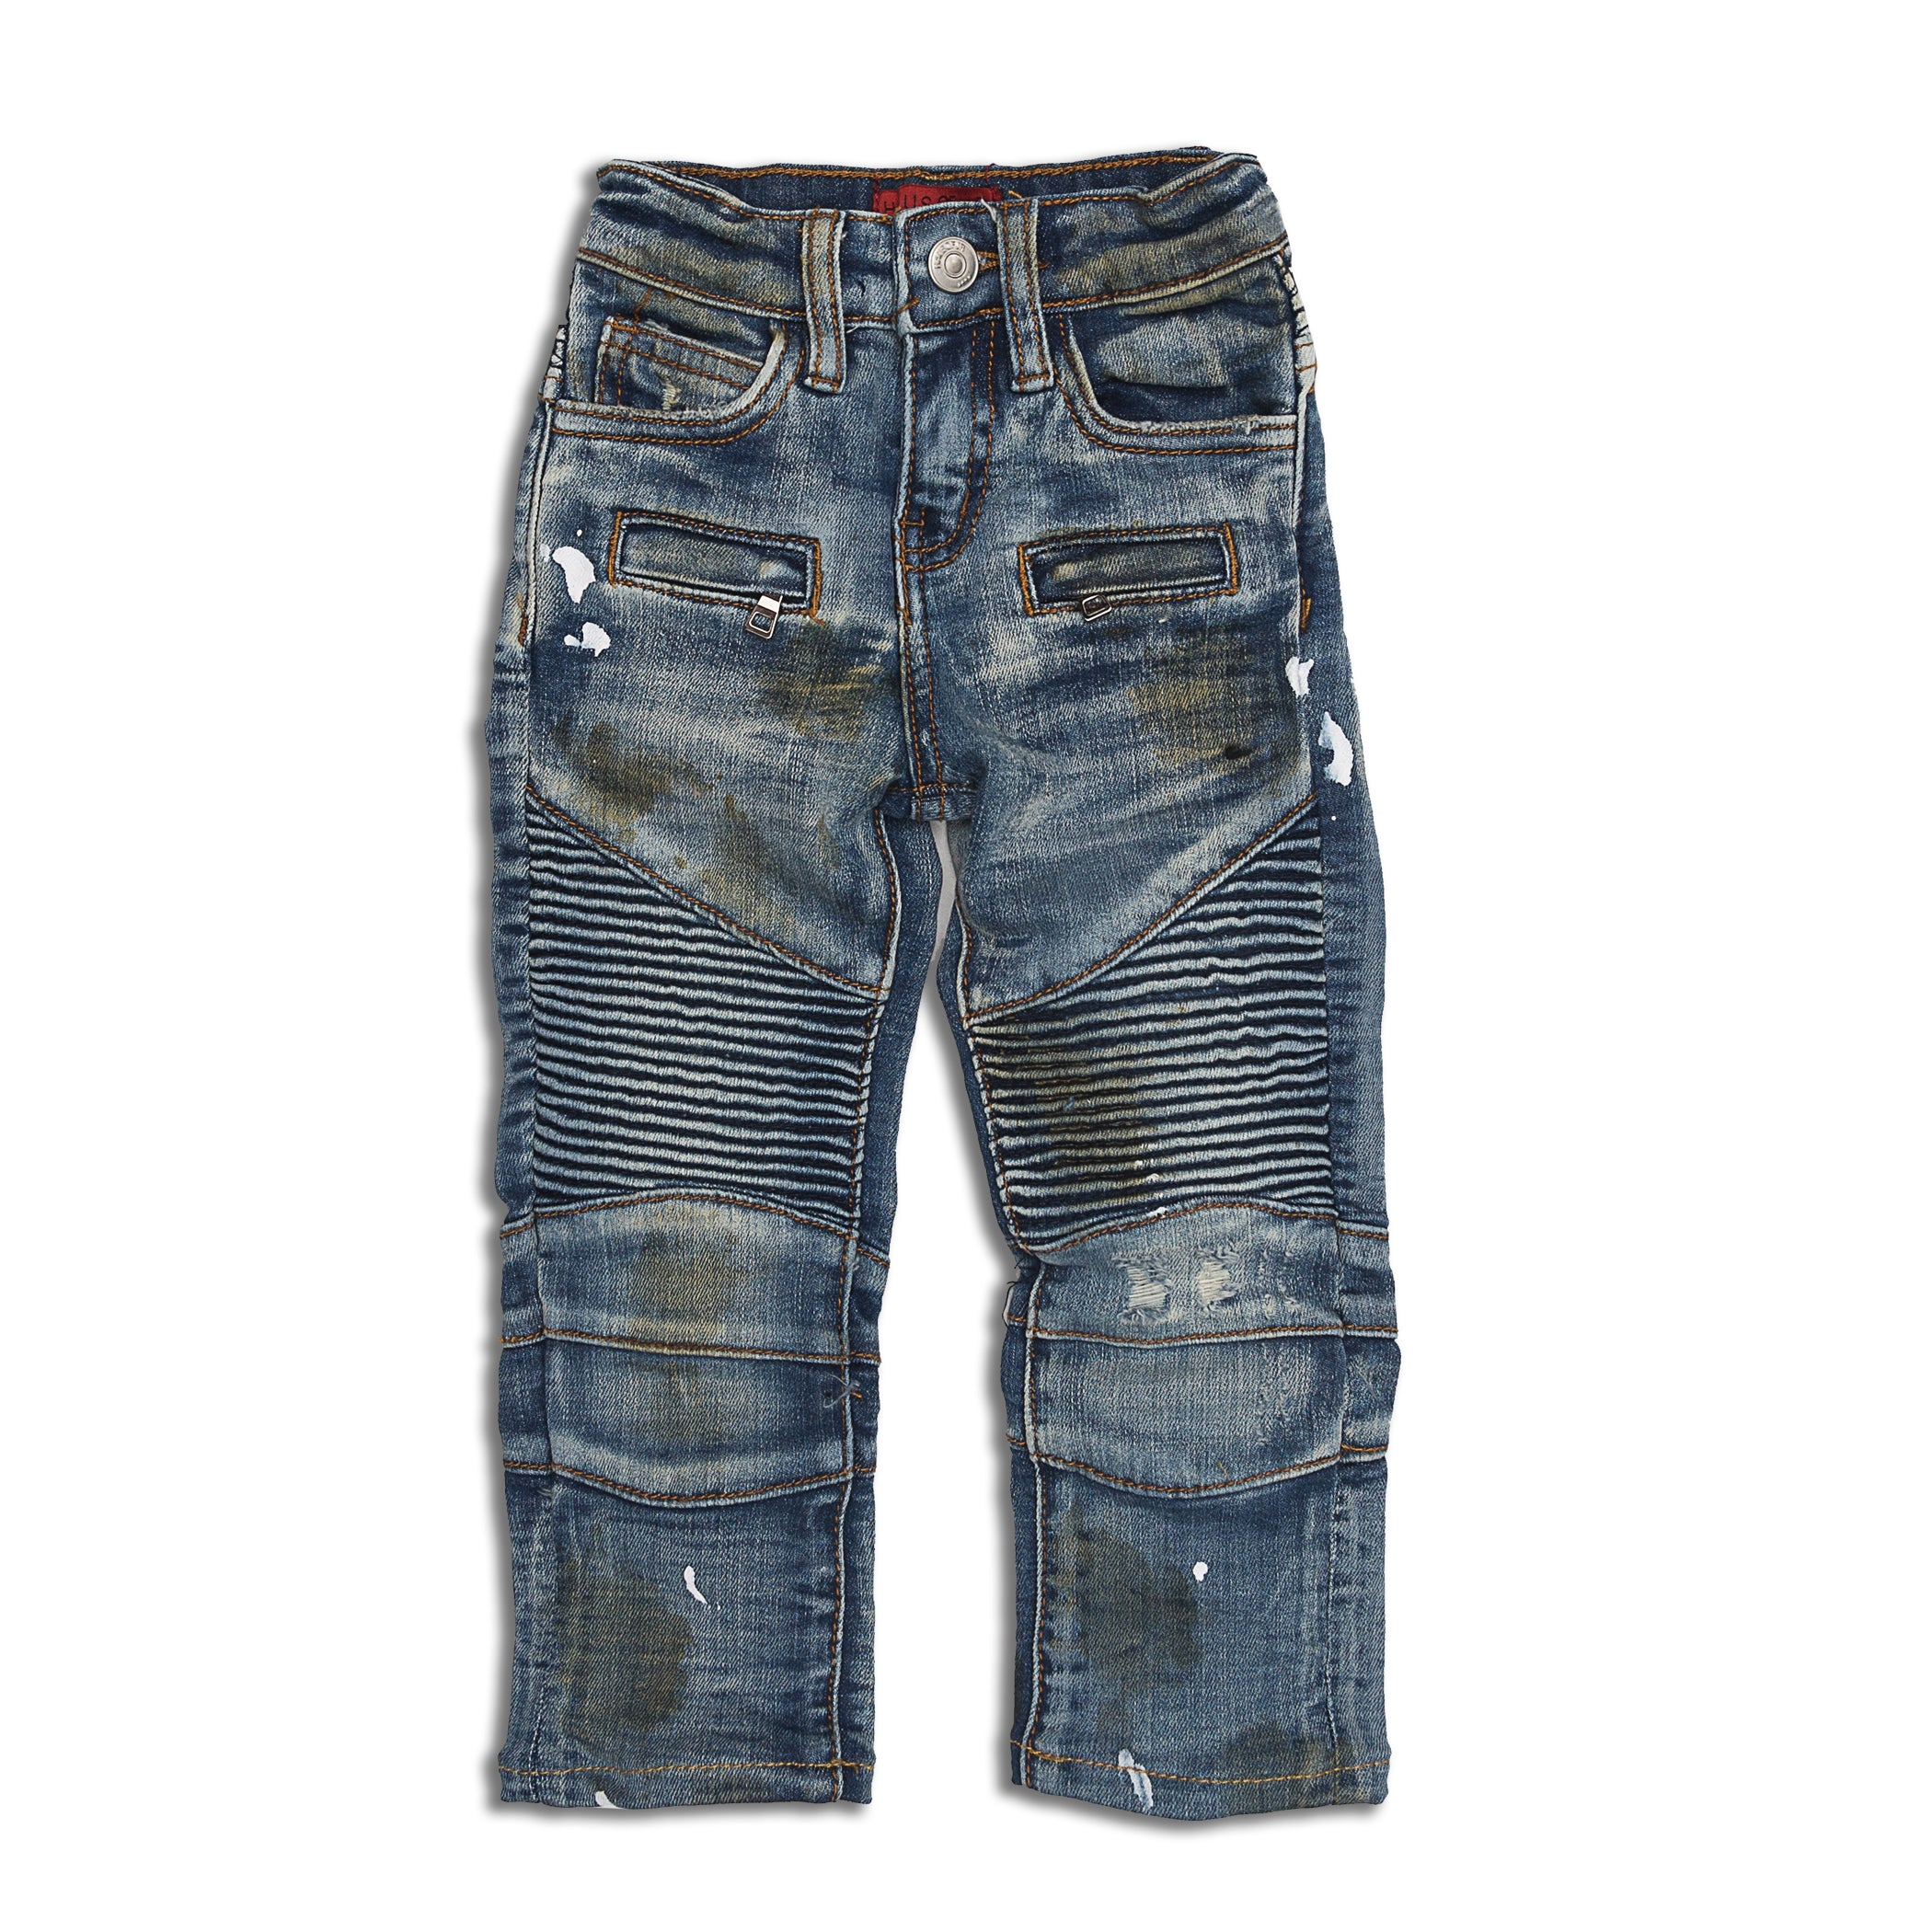 Haus of JR - Sawyer Biker Denim